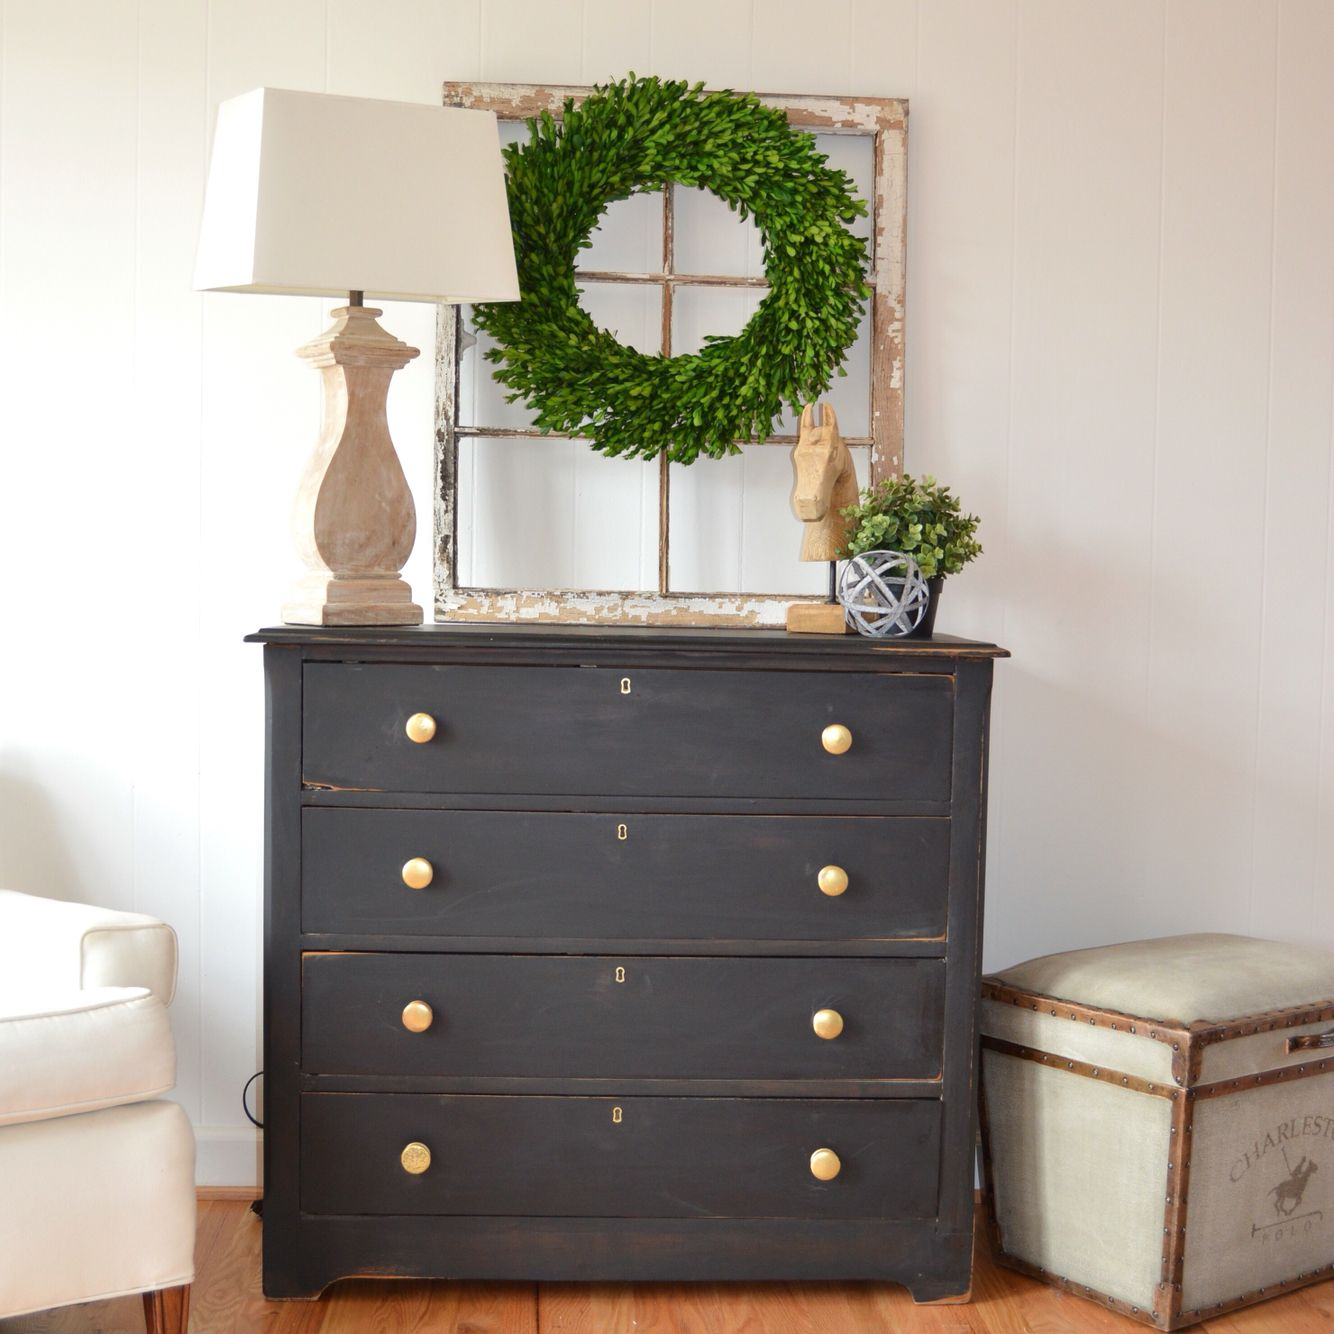 Classy black dresser. Milk paint painted dresser with gold